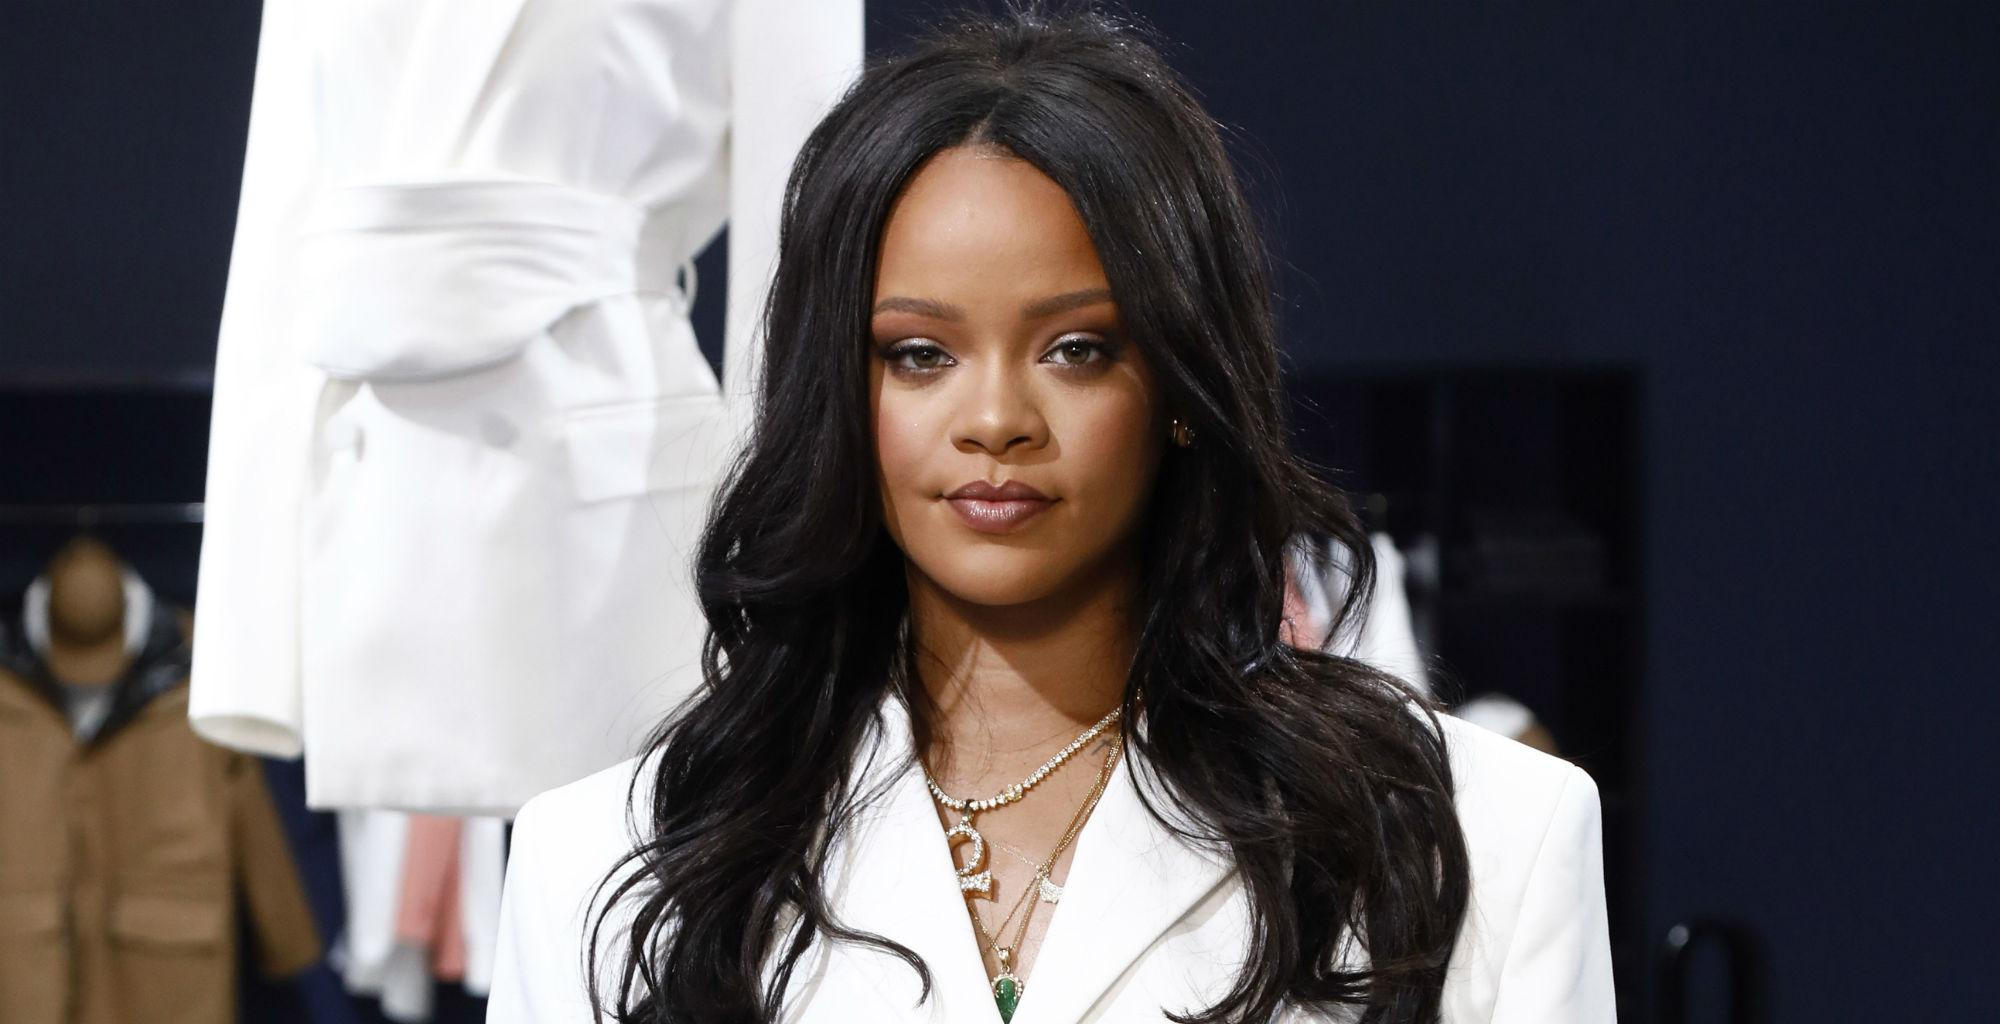 Rihanna Impresses Fans With A Video In Which She's Showing Off Her Jaw-Dropping Beach Body